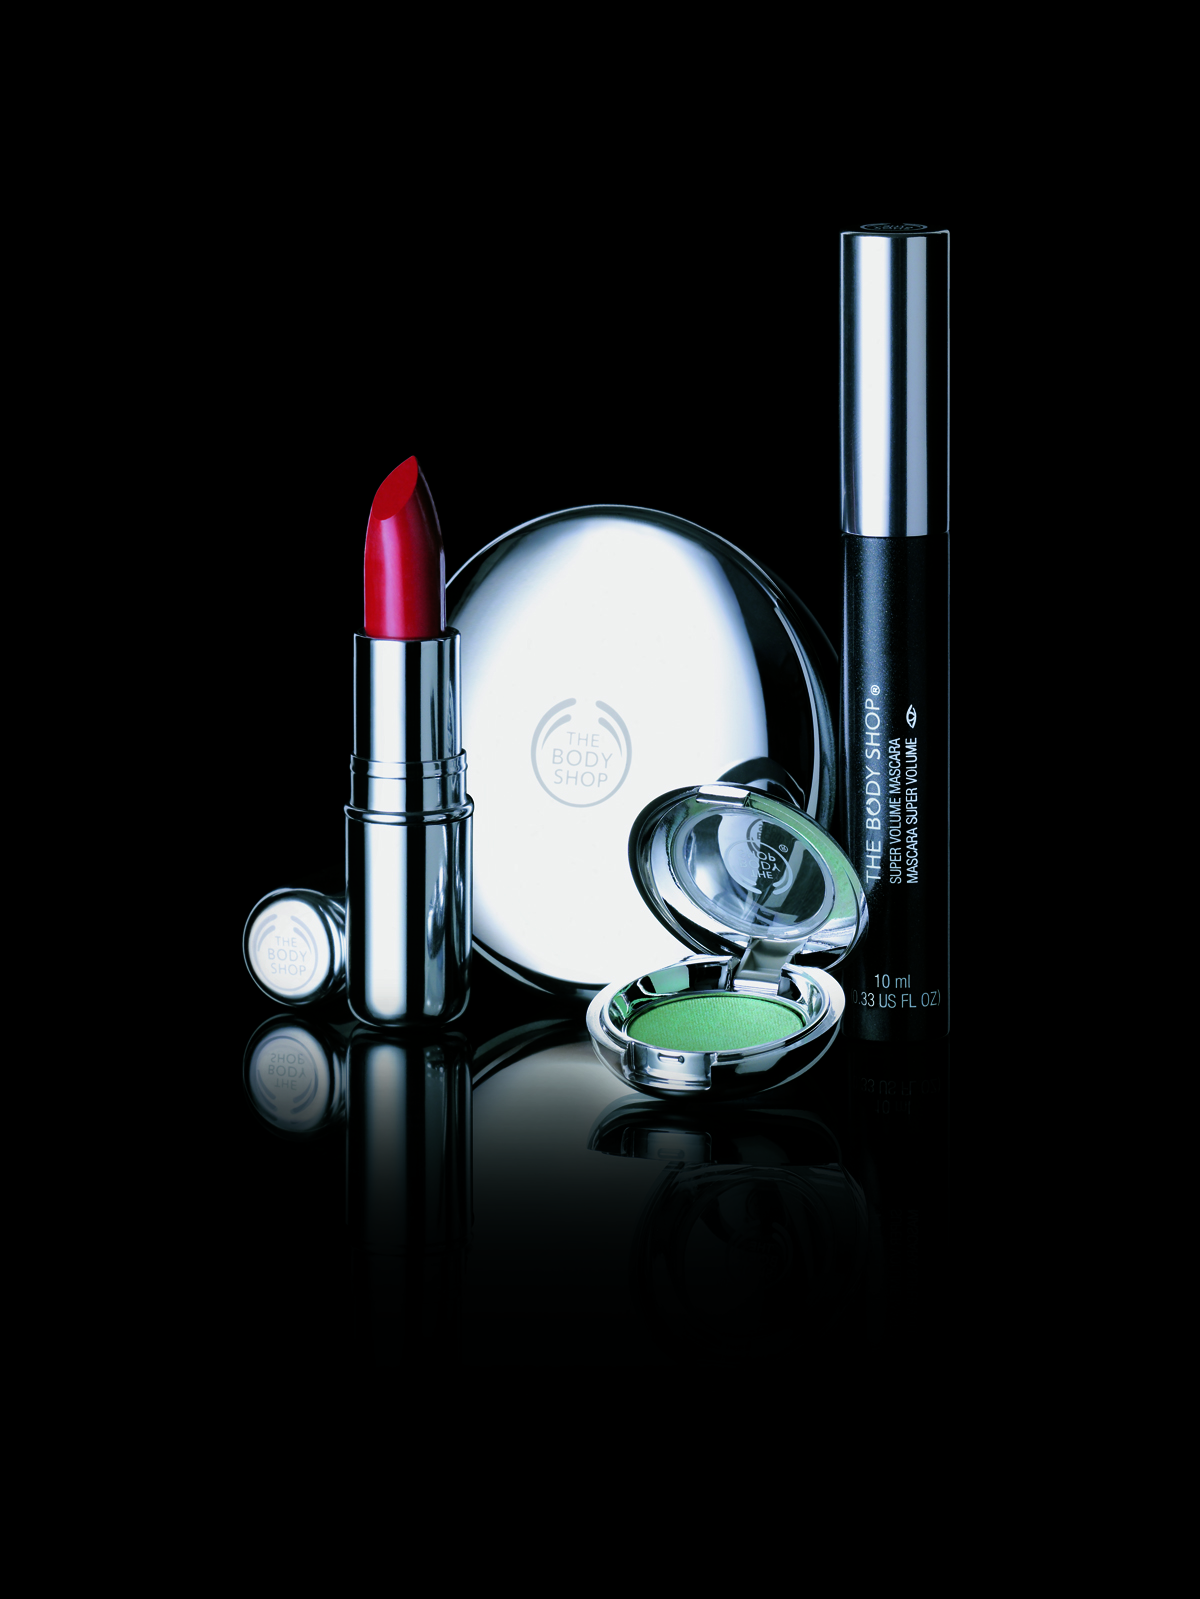 THE BODY SHOP, COMPLETE MAKE OVER OF THE MAKE UP RANGE.